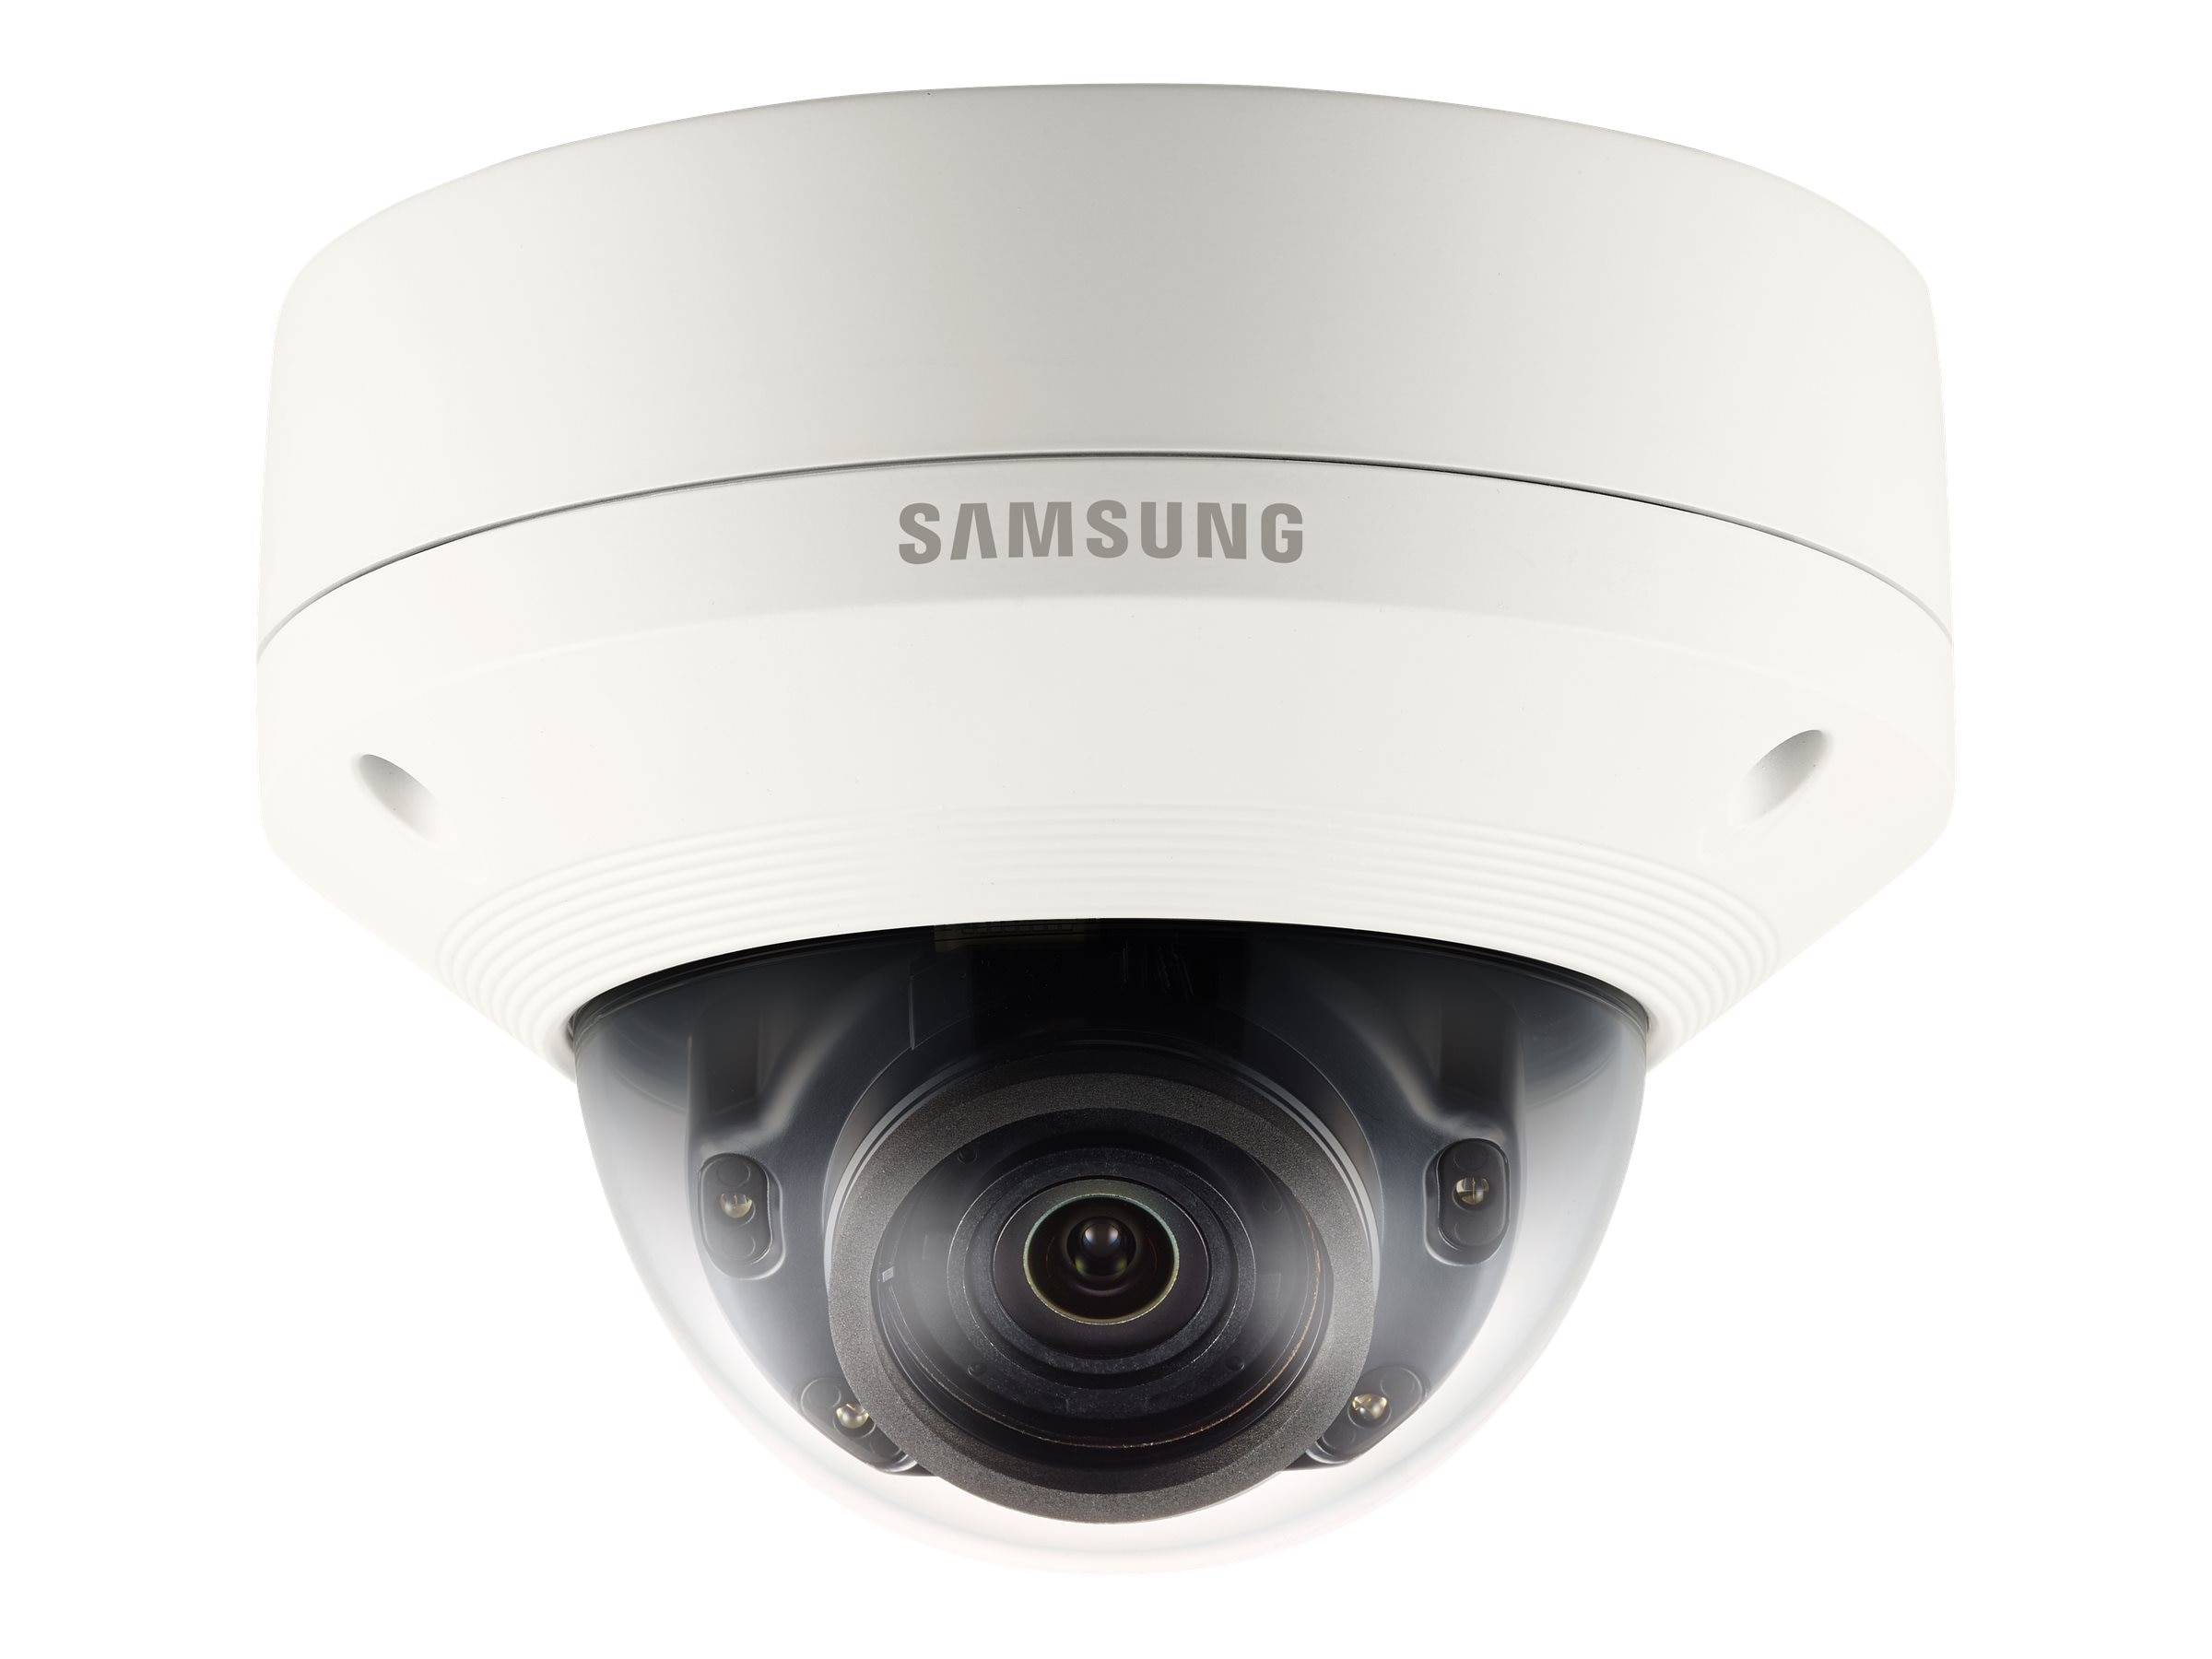 Samsung 5MP Vandal-Resistant Network IR Dome Camera, White, SNV-8081R